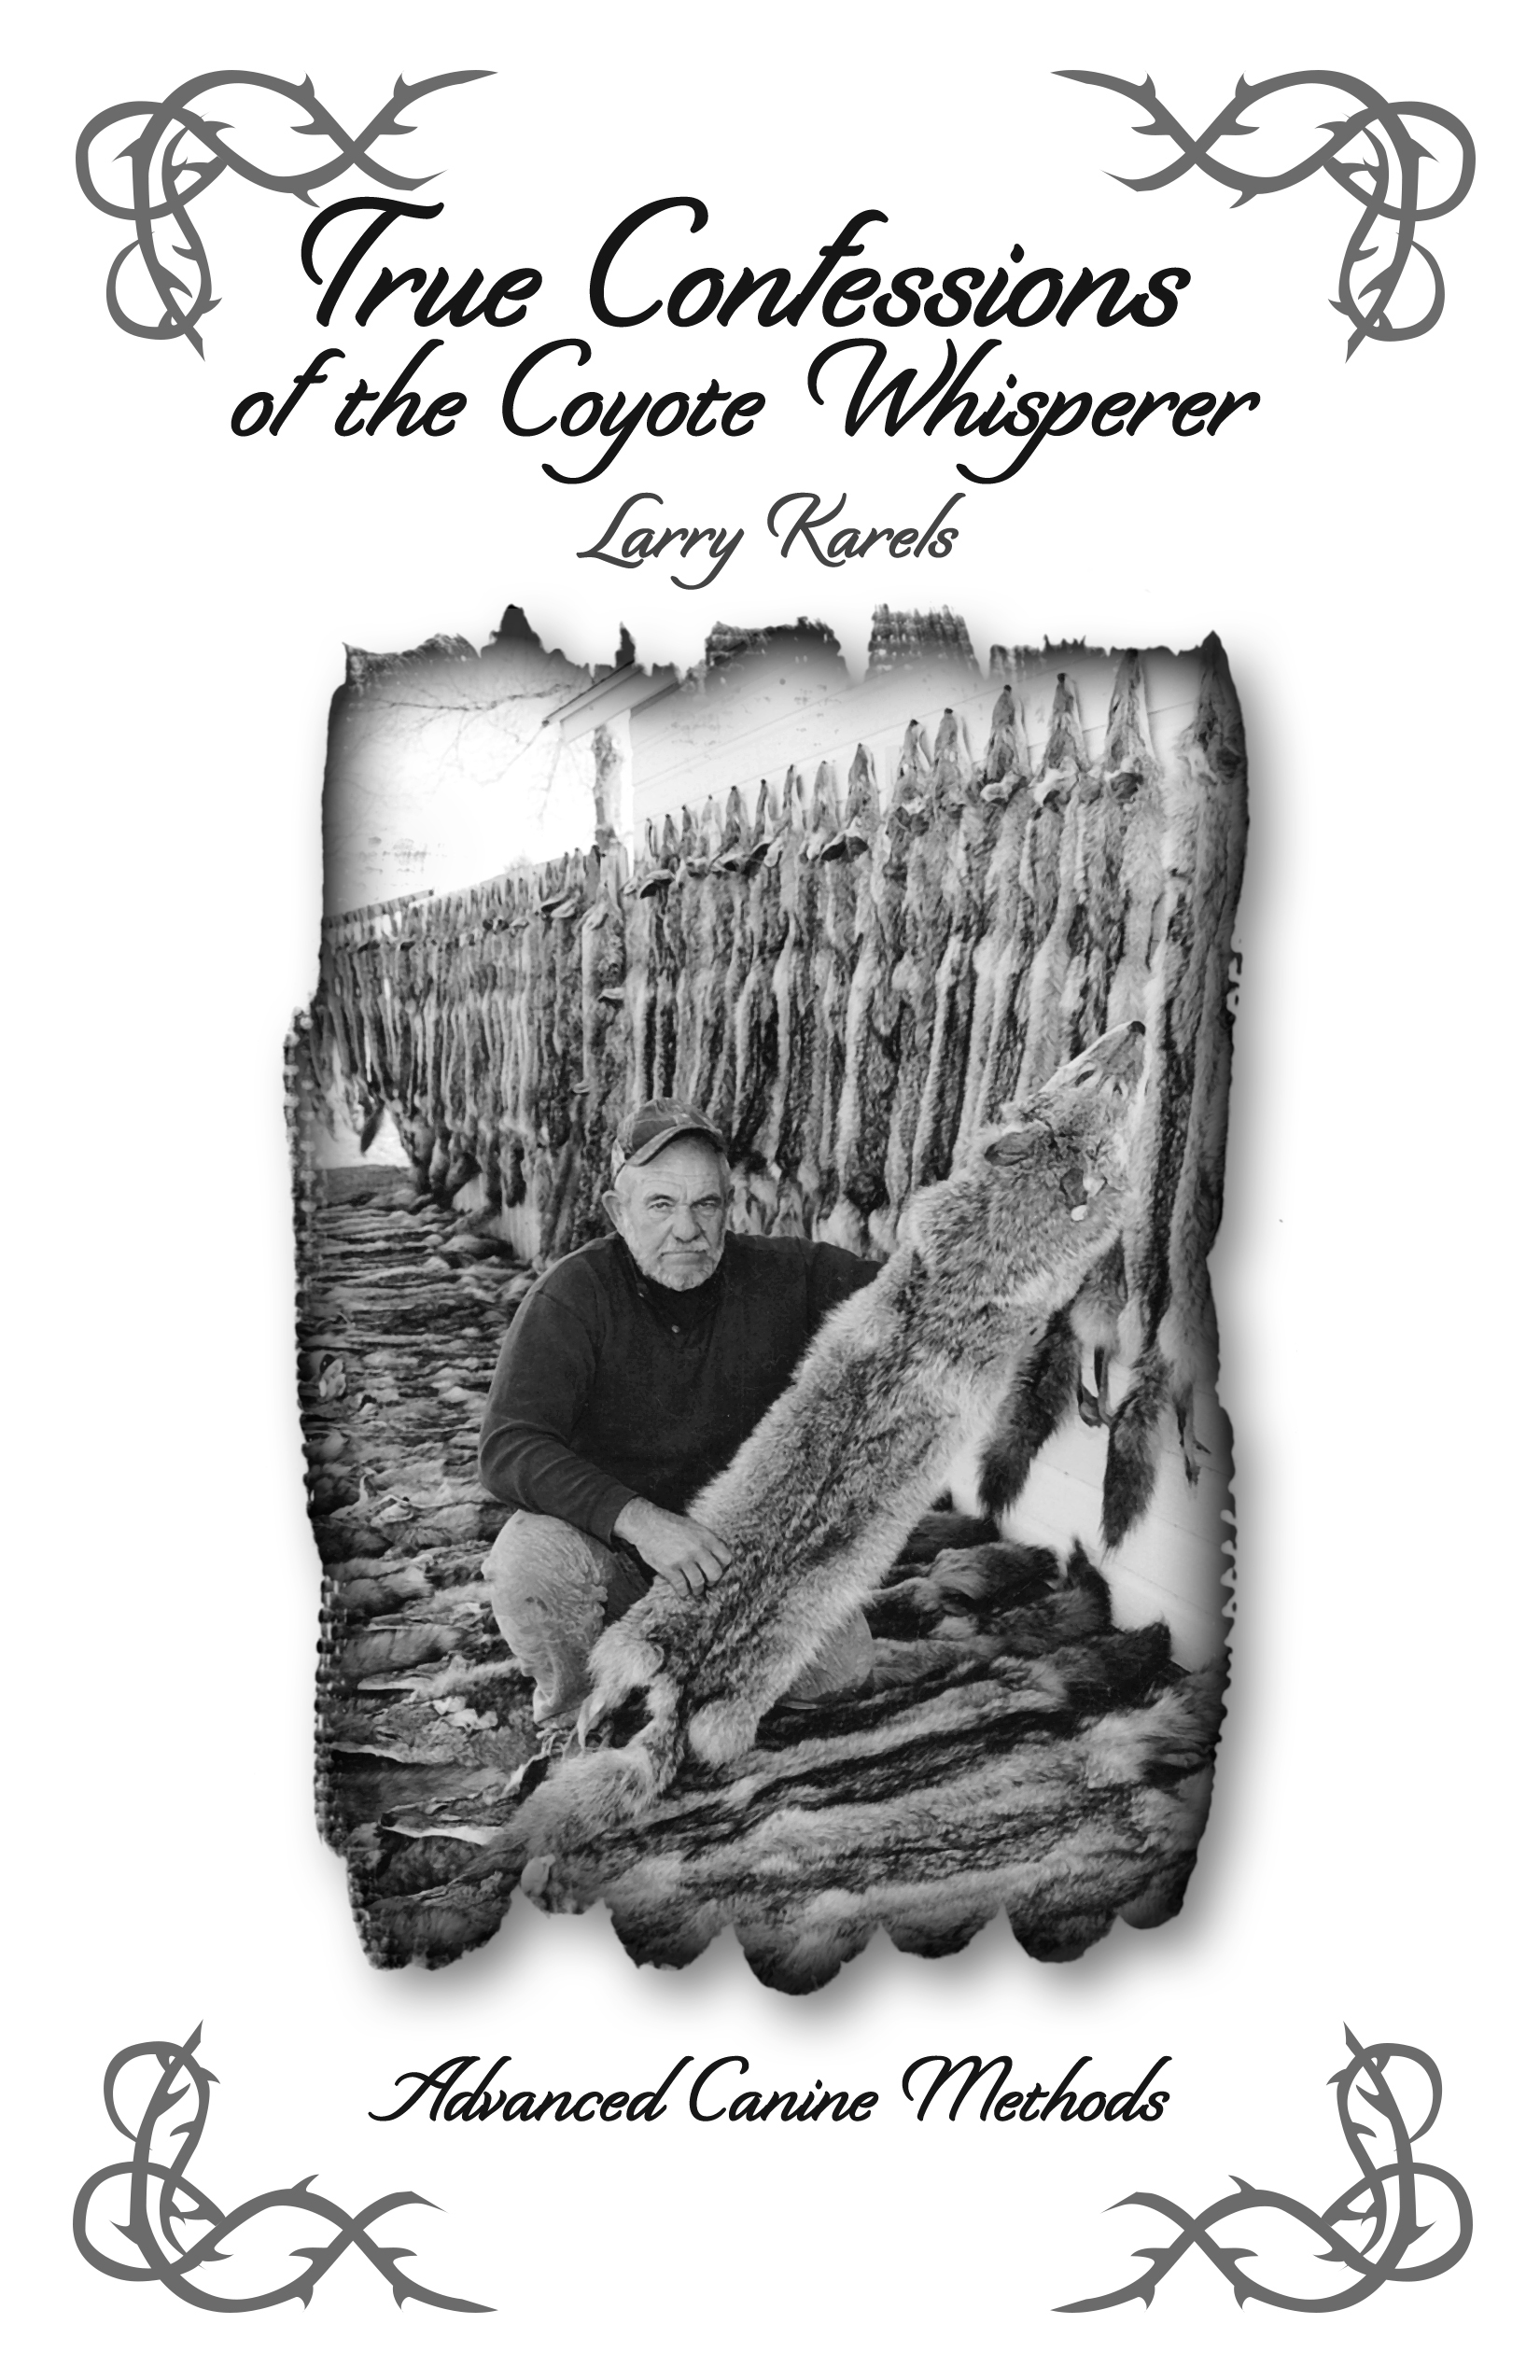 True Confessions of a Coyote Whisperer - Larry Karels Book